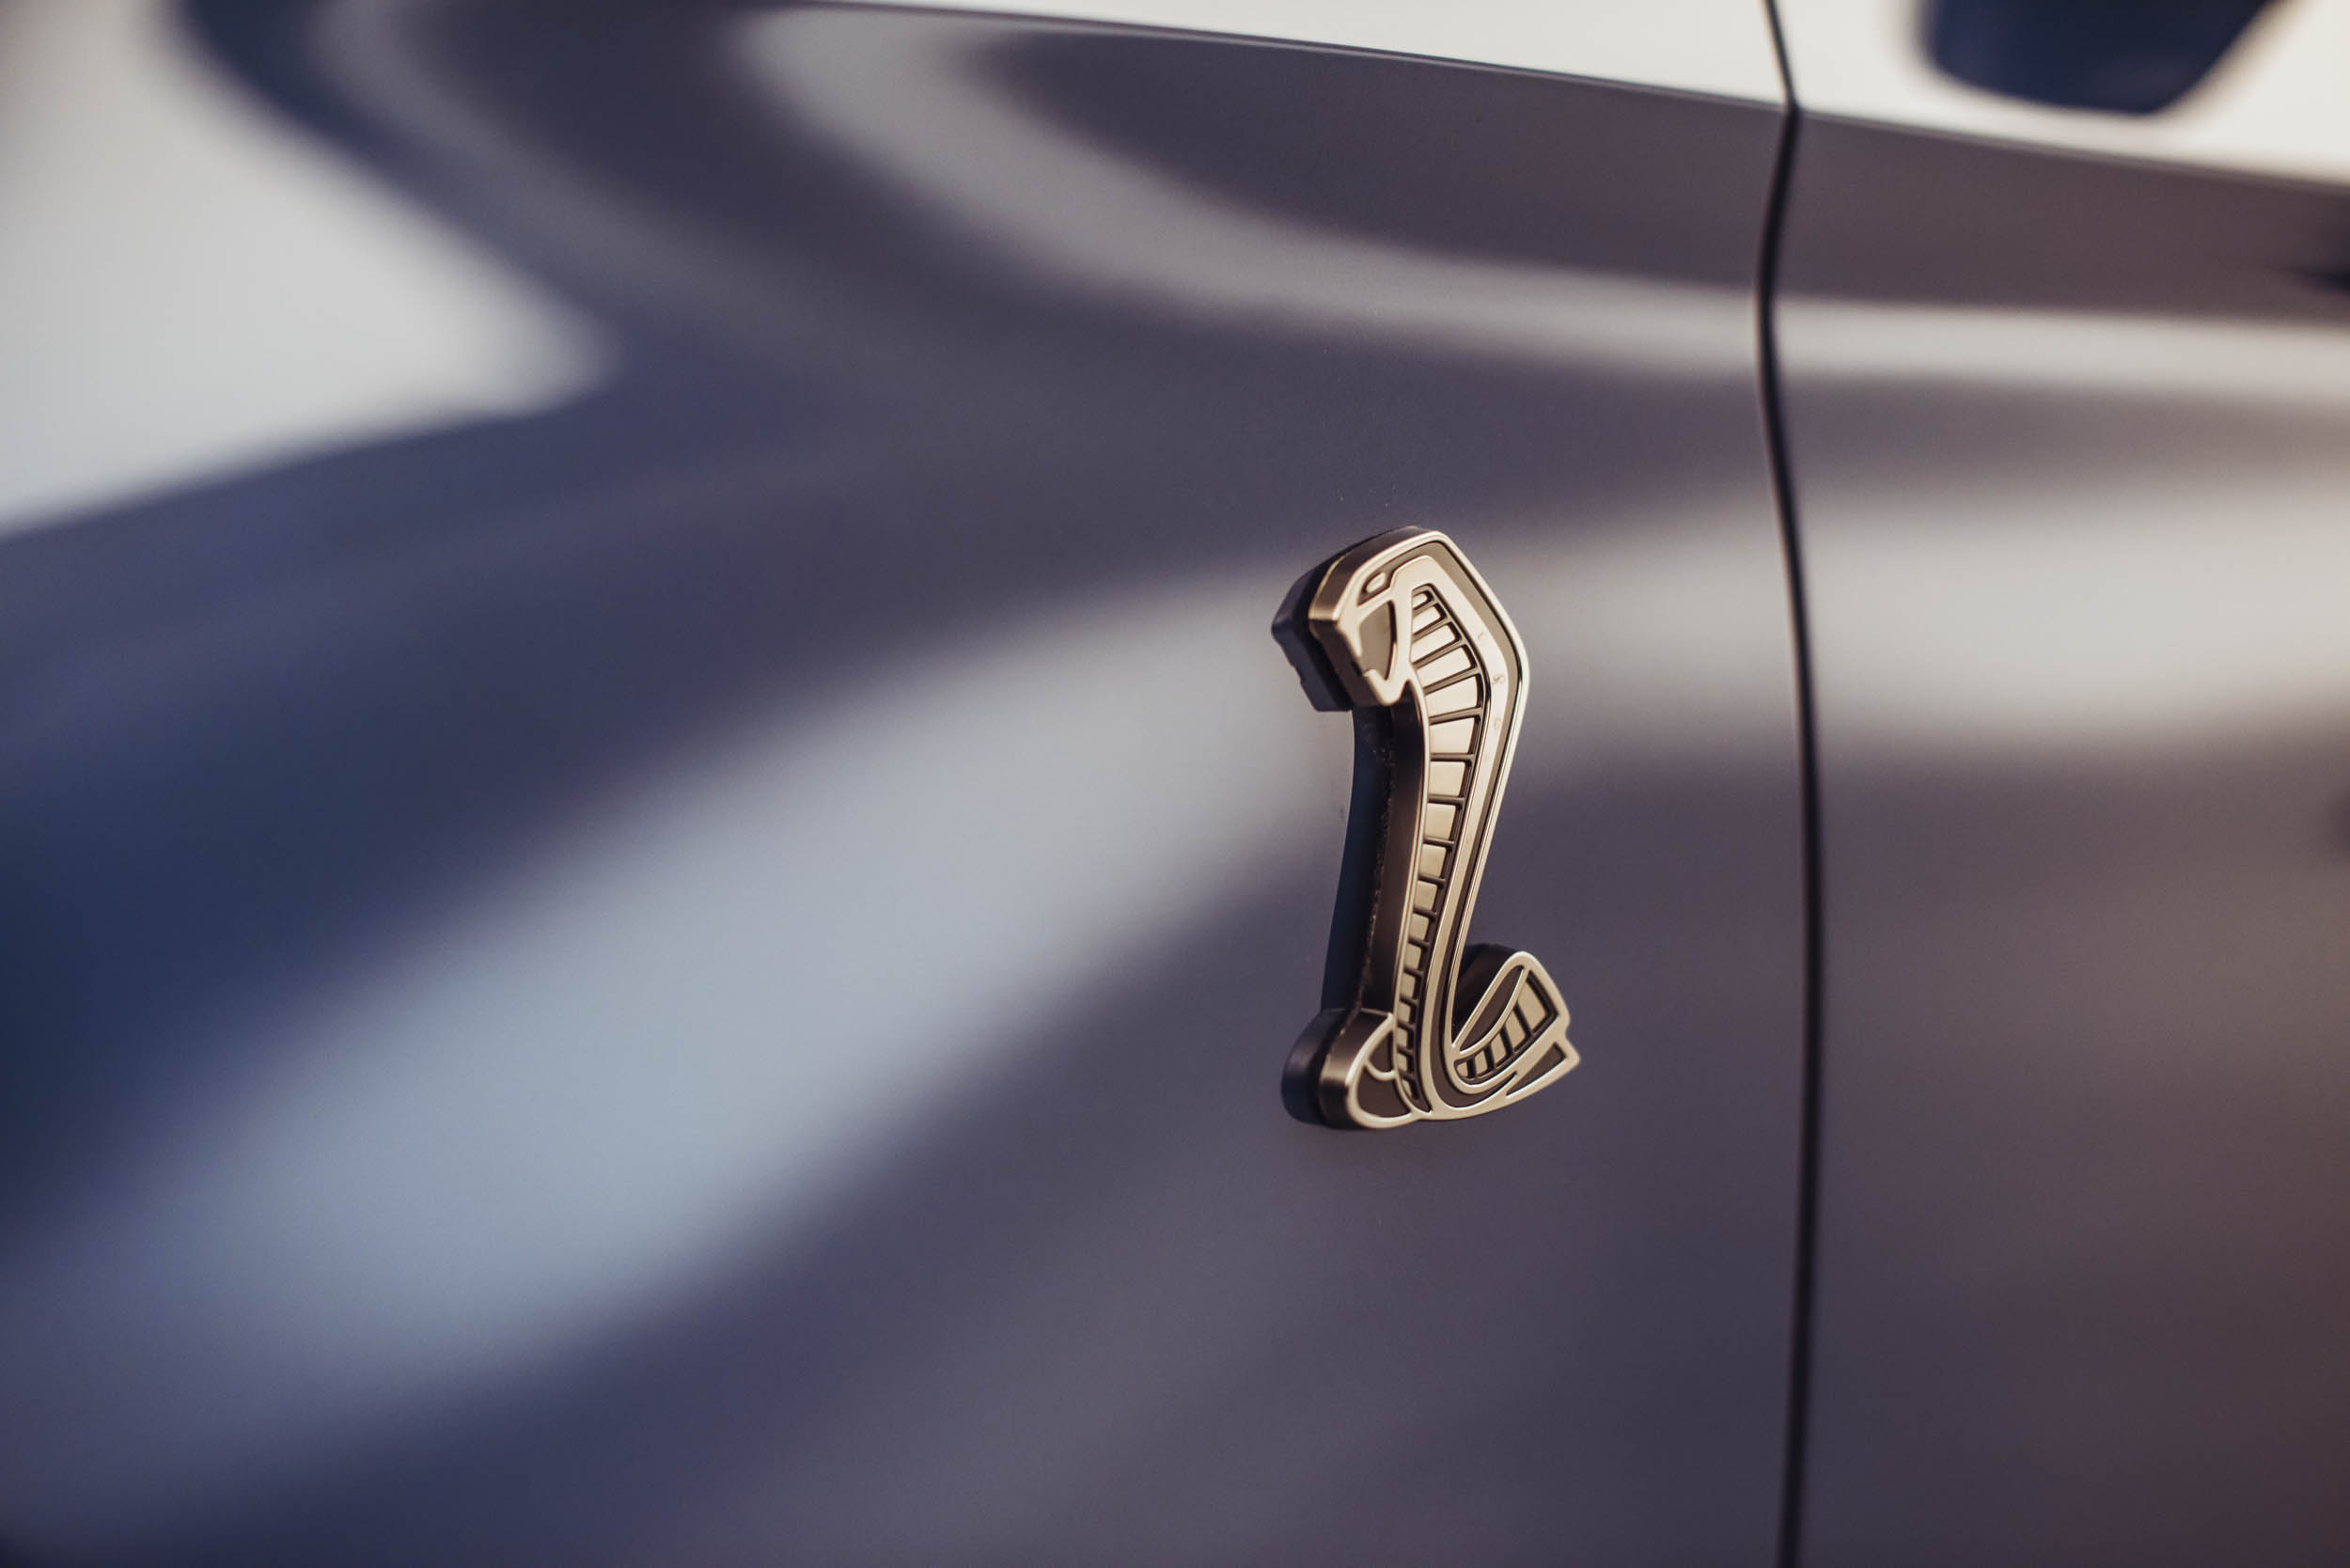 2020 Shelby GT500 snake badge